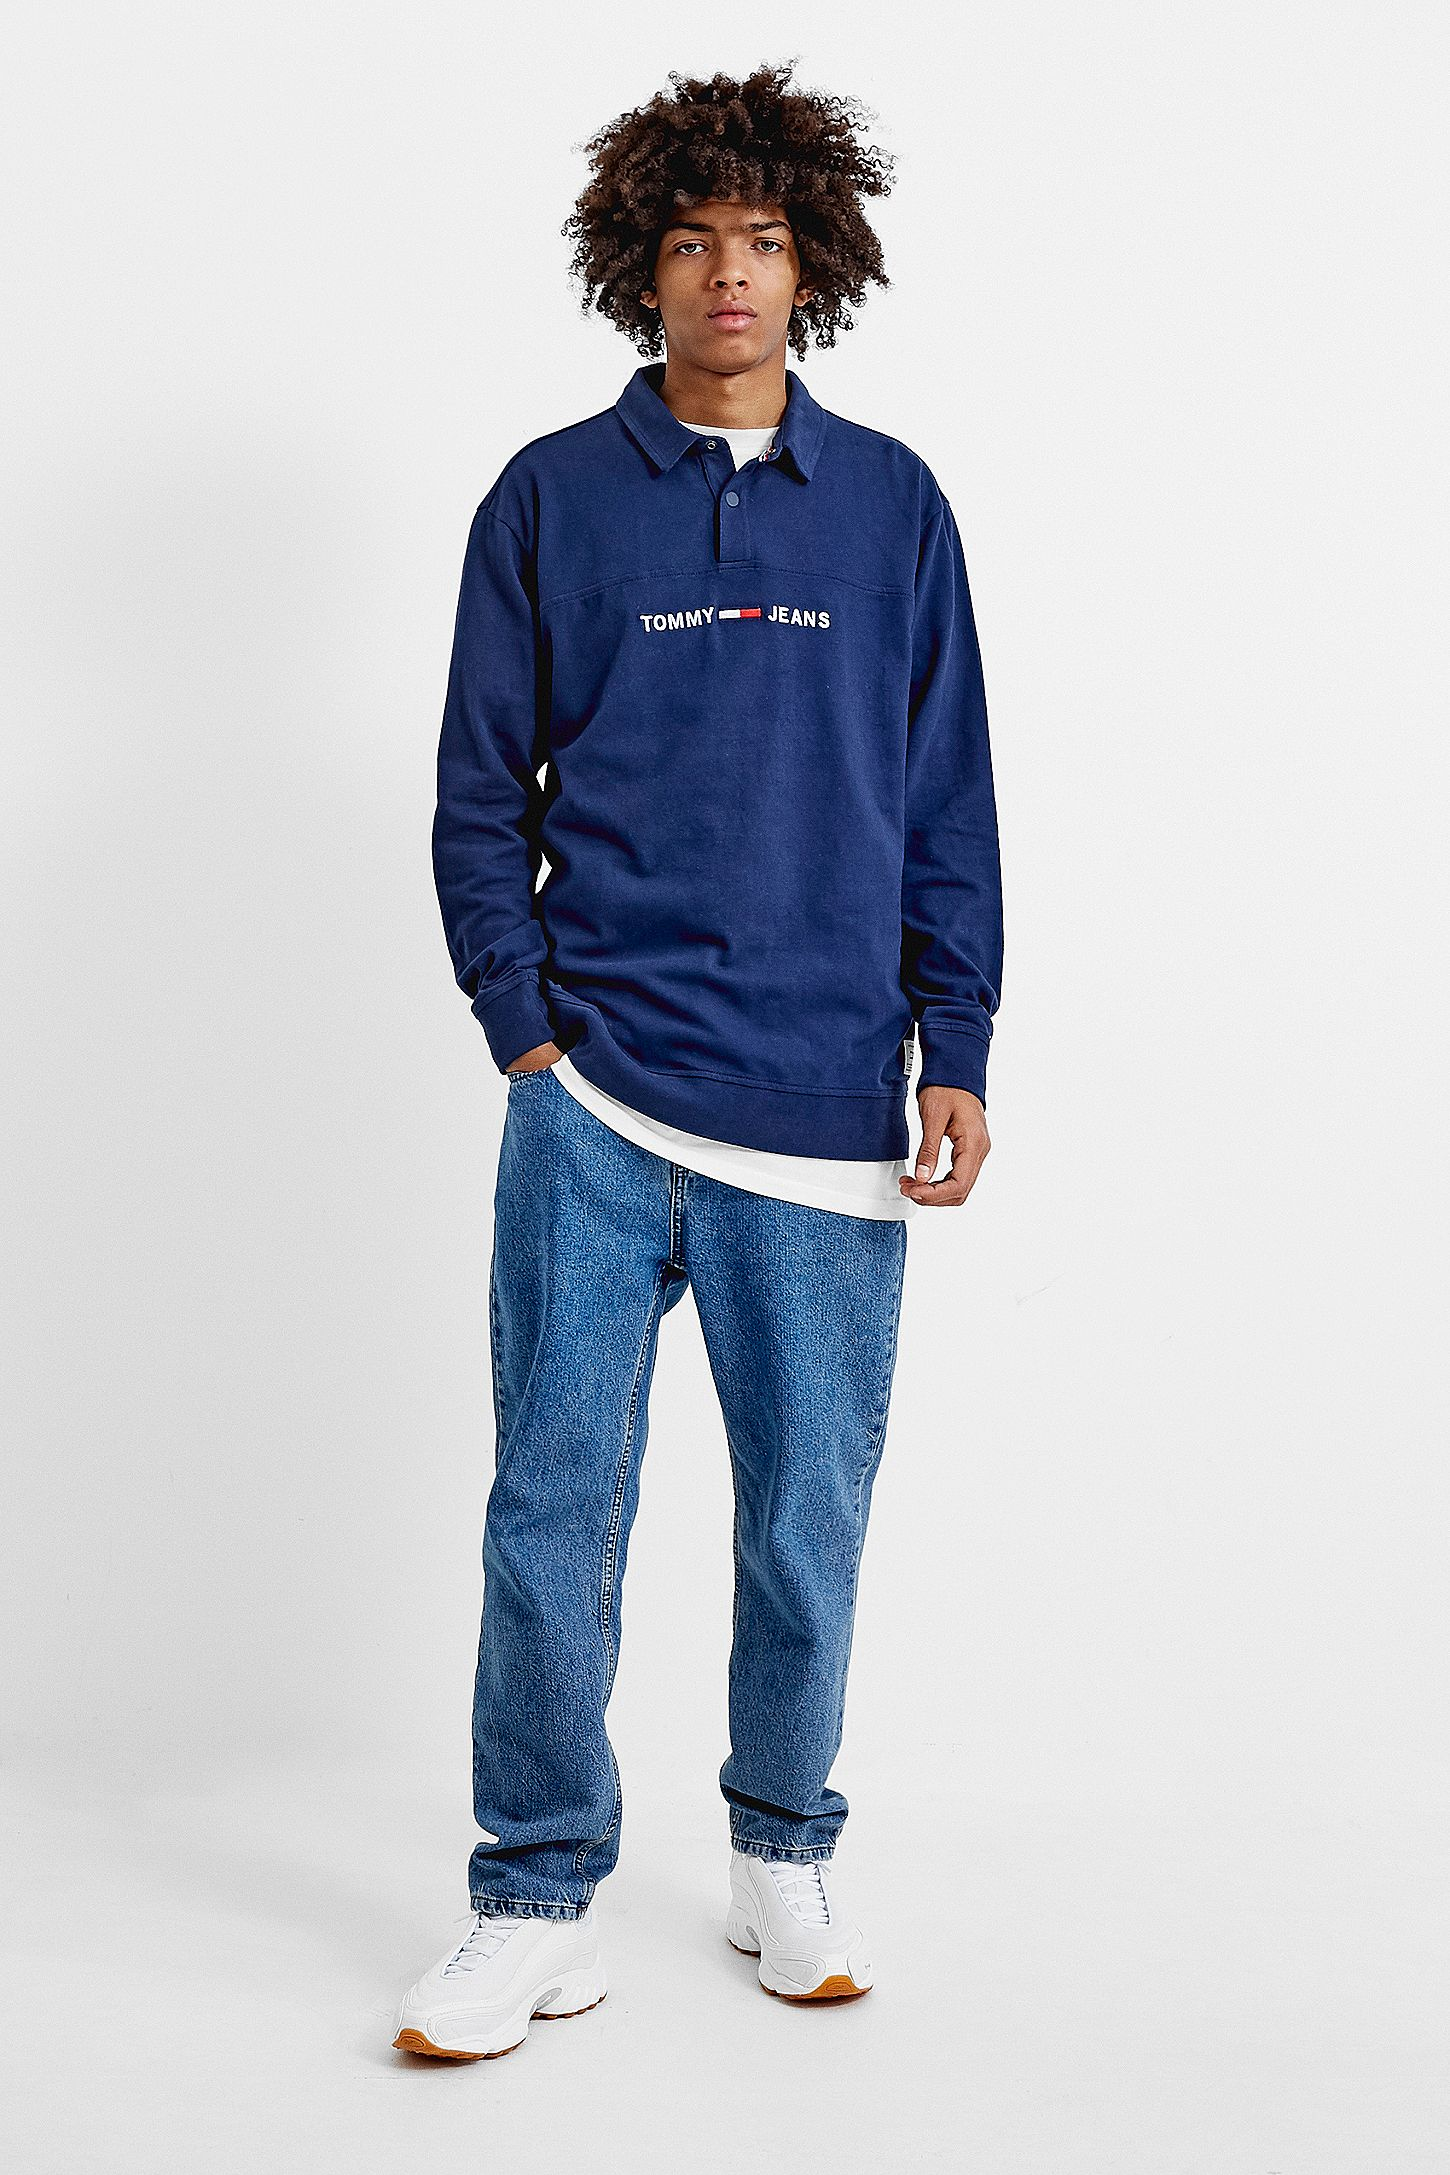 c2db0f32 Tommy Jeans Essential Navy Rugby Shirt | Urban Outfitters UK